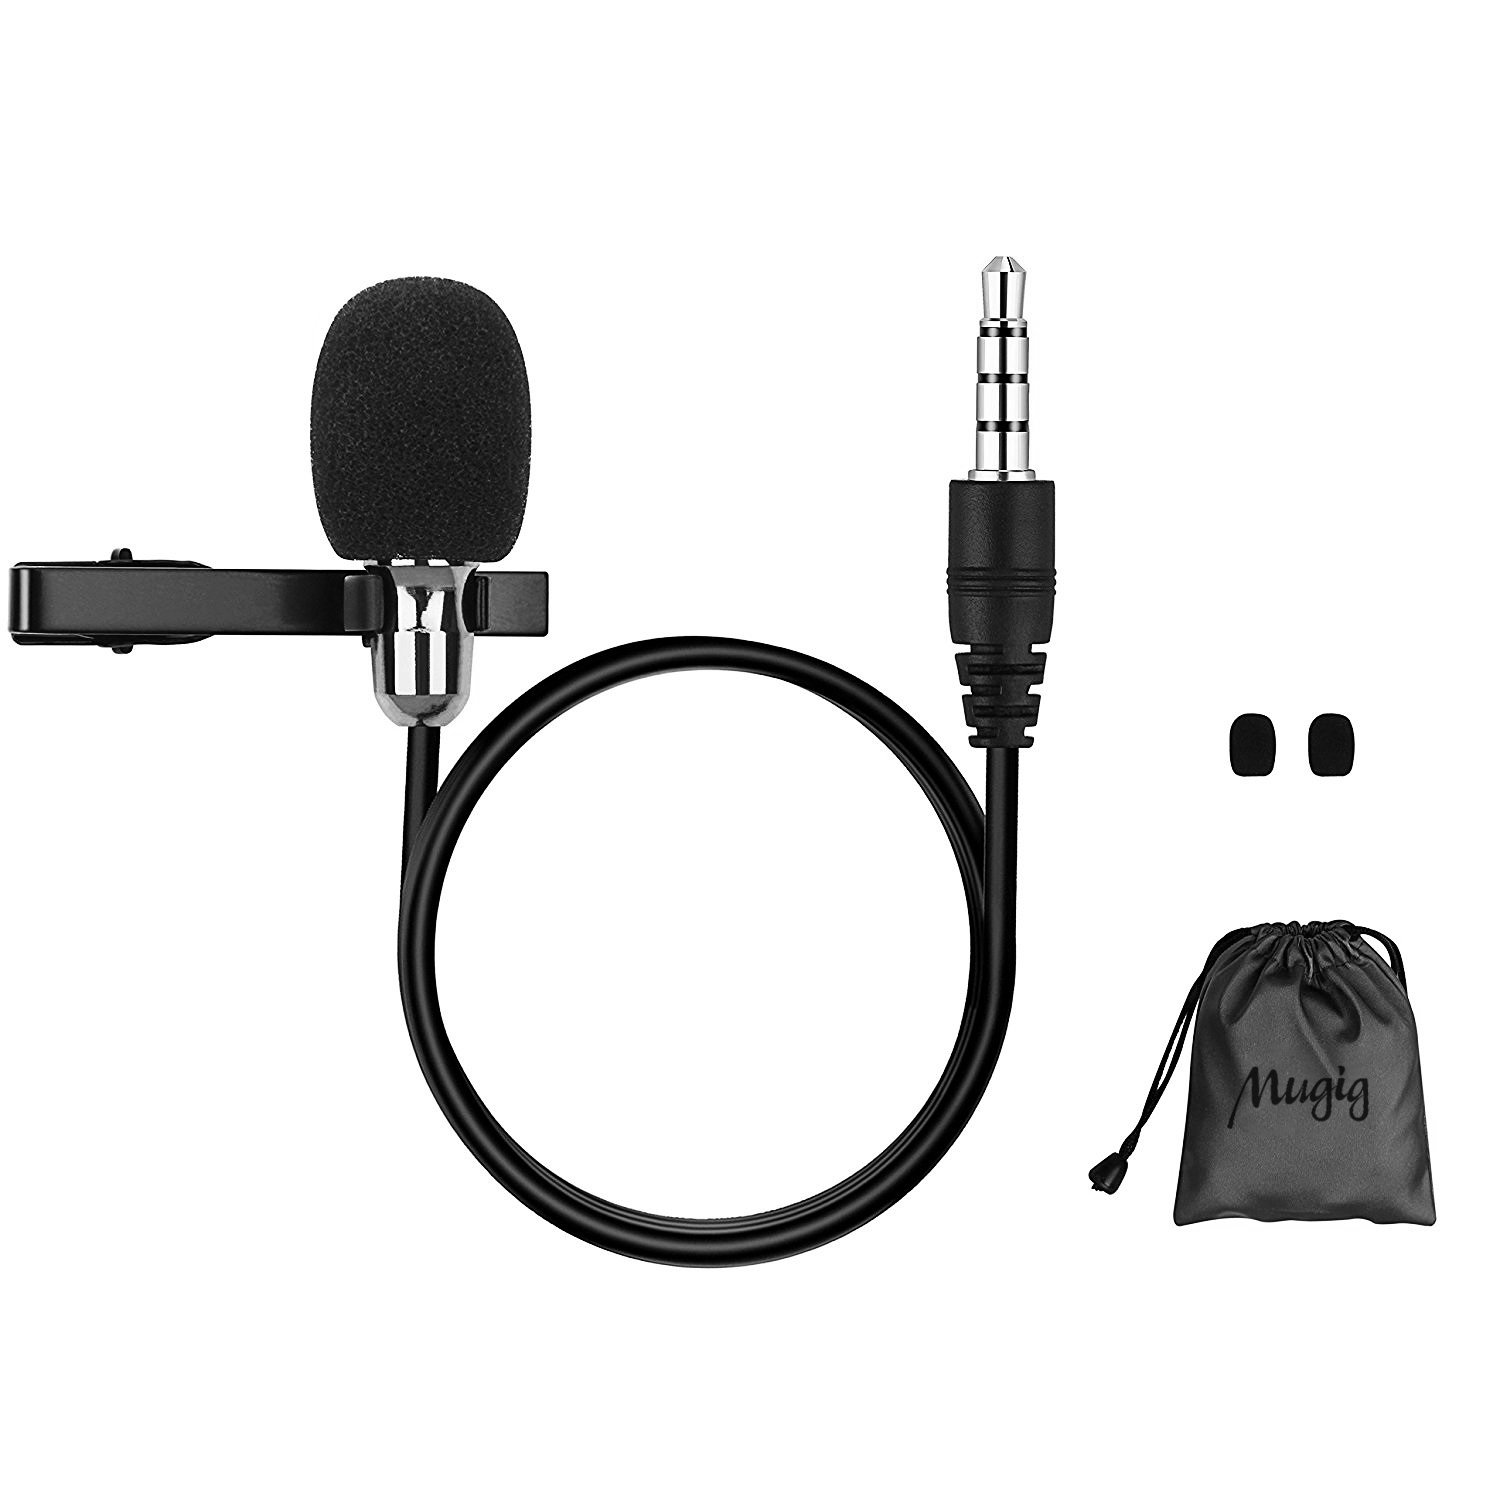 Mugig Mini Lavalier Lapel Microphone, Omnidirectional Condenser Microphone for Smartphone Mobile Phone M-3